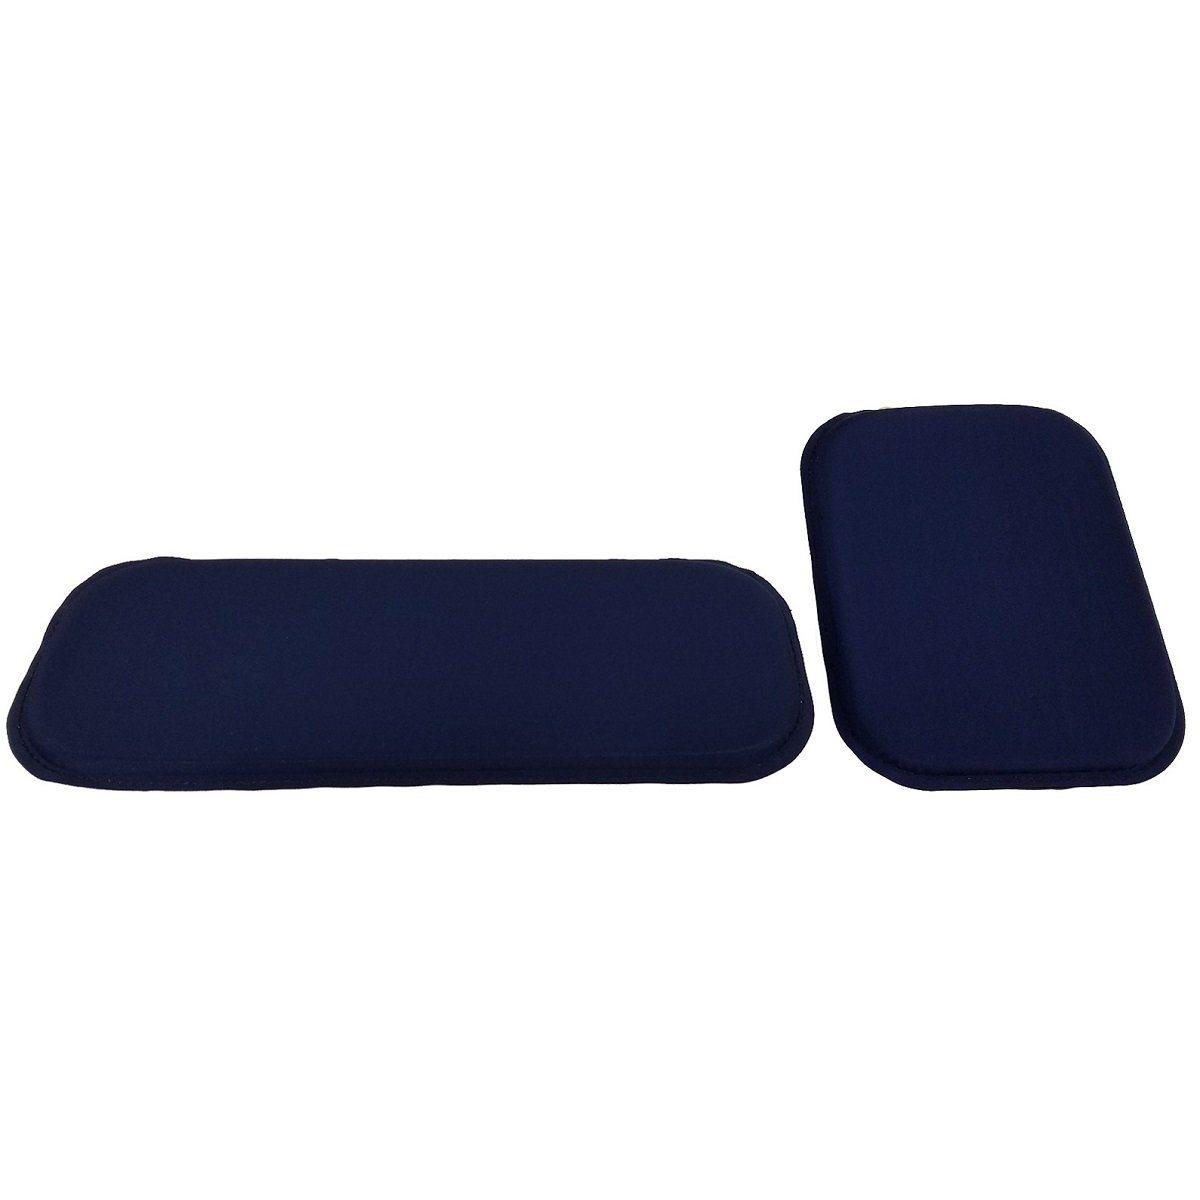 ULTRAGEL ANYWHERE, ANYTIME Arm/ Wrist Rest Personal Comfort Gel Pads- Combo Set (5.0X12.5 and 6.5x8.5)